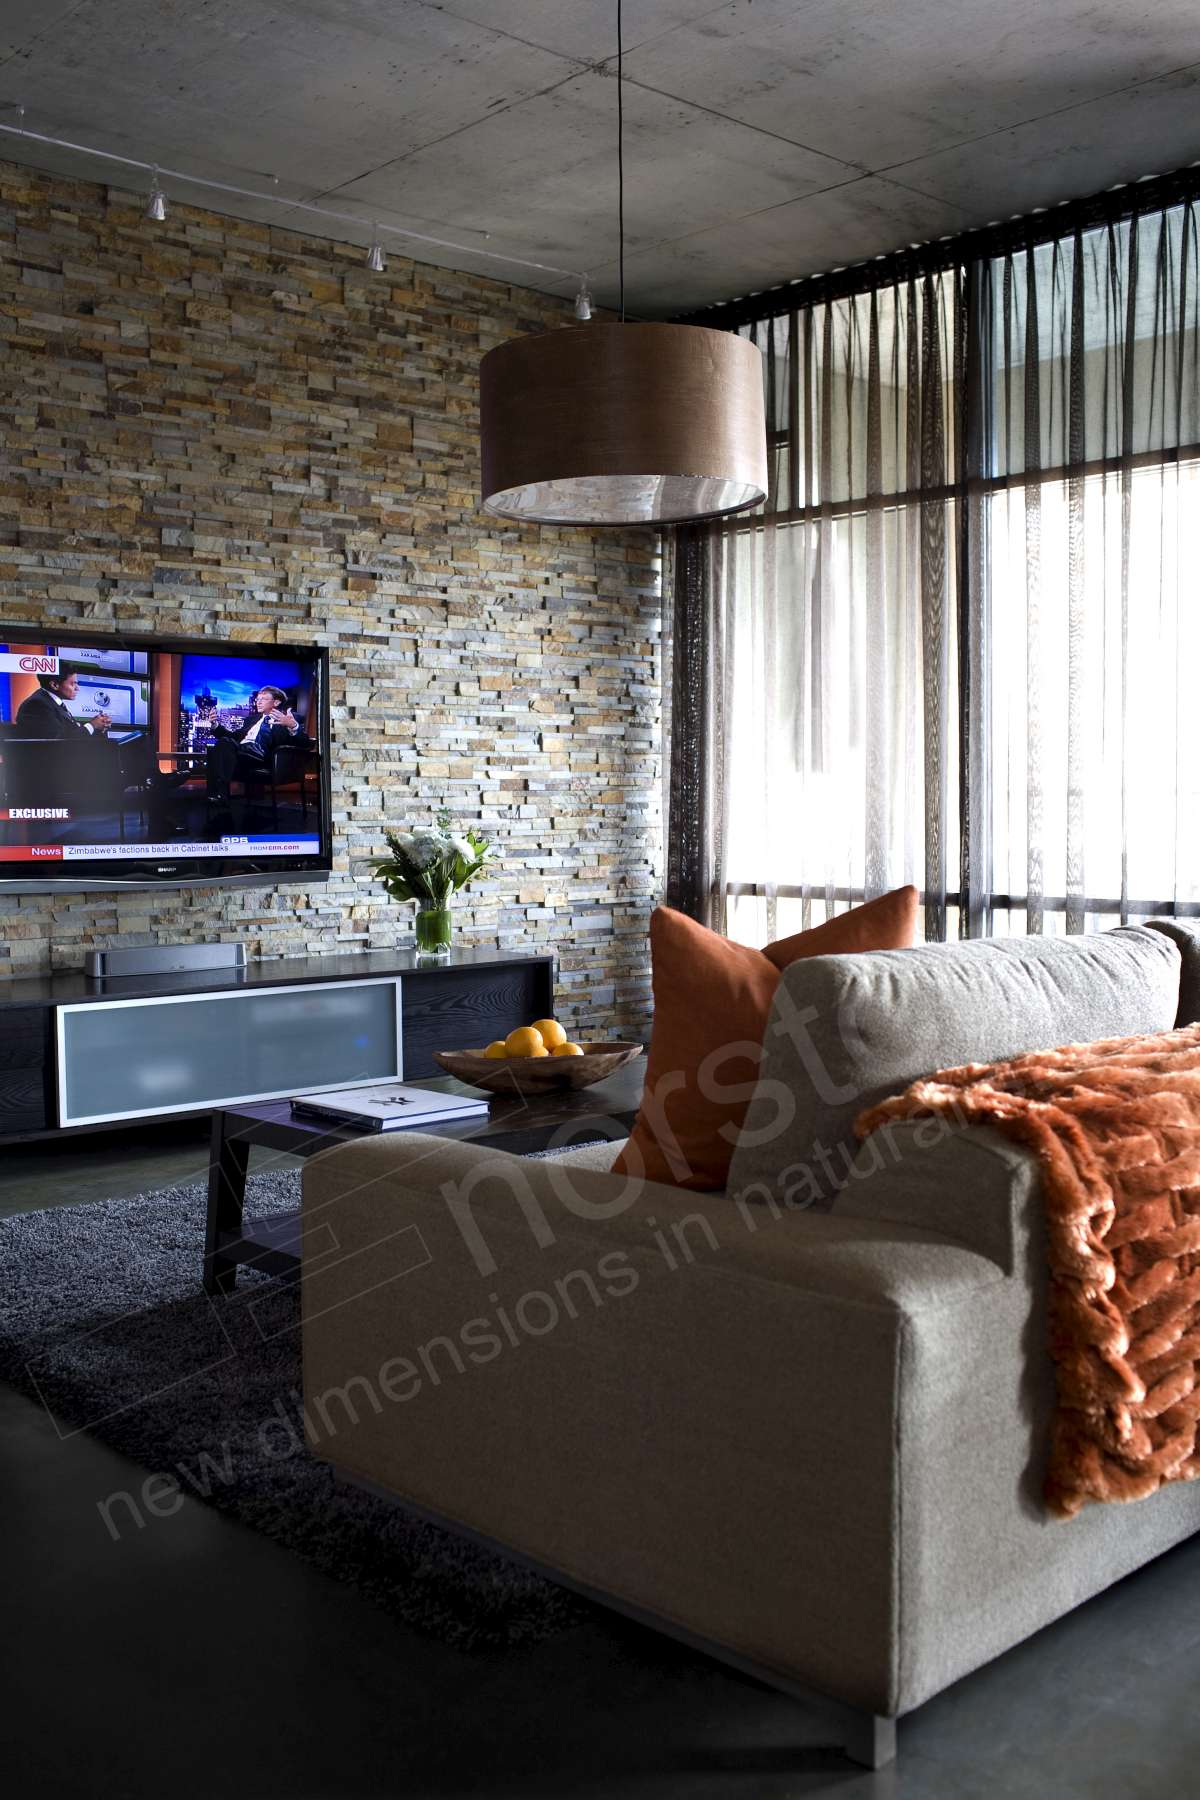 Flat Screen TV installed on Stacked Stone Wall - Living Room